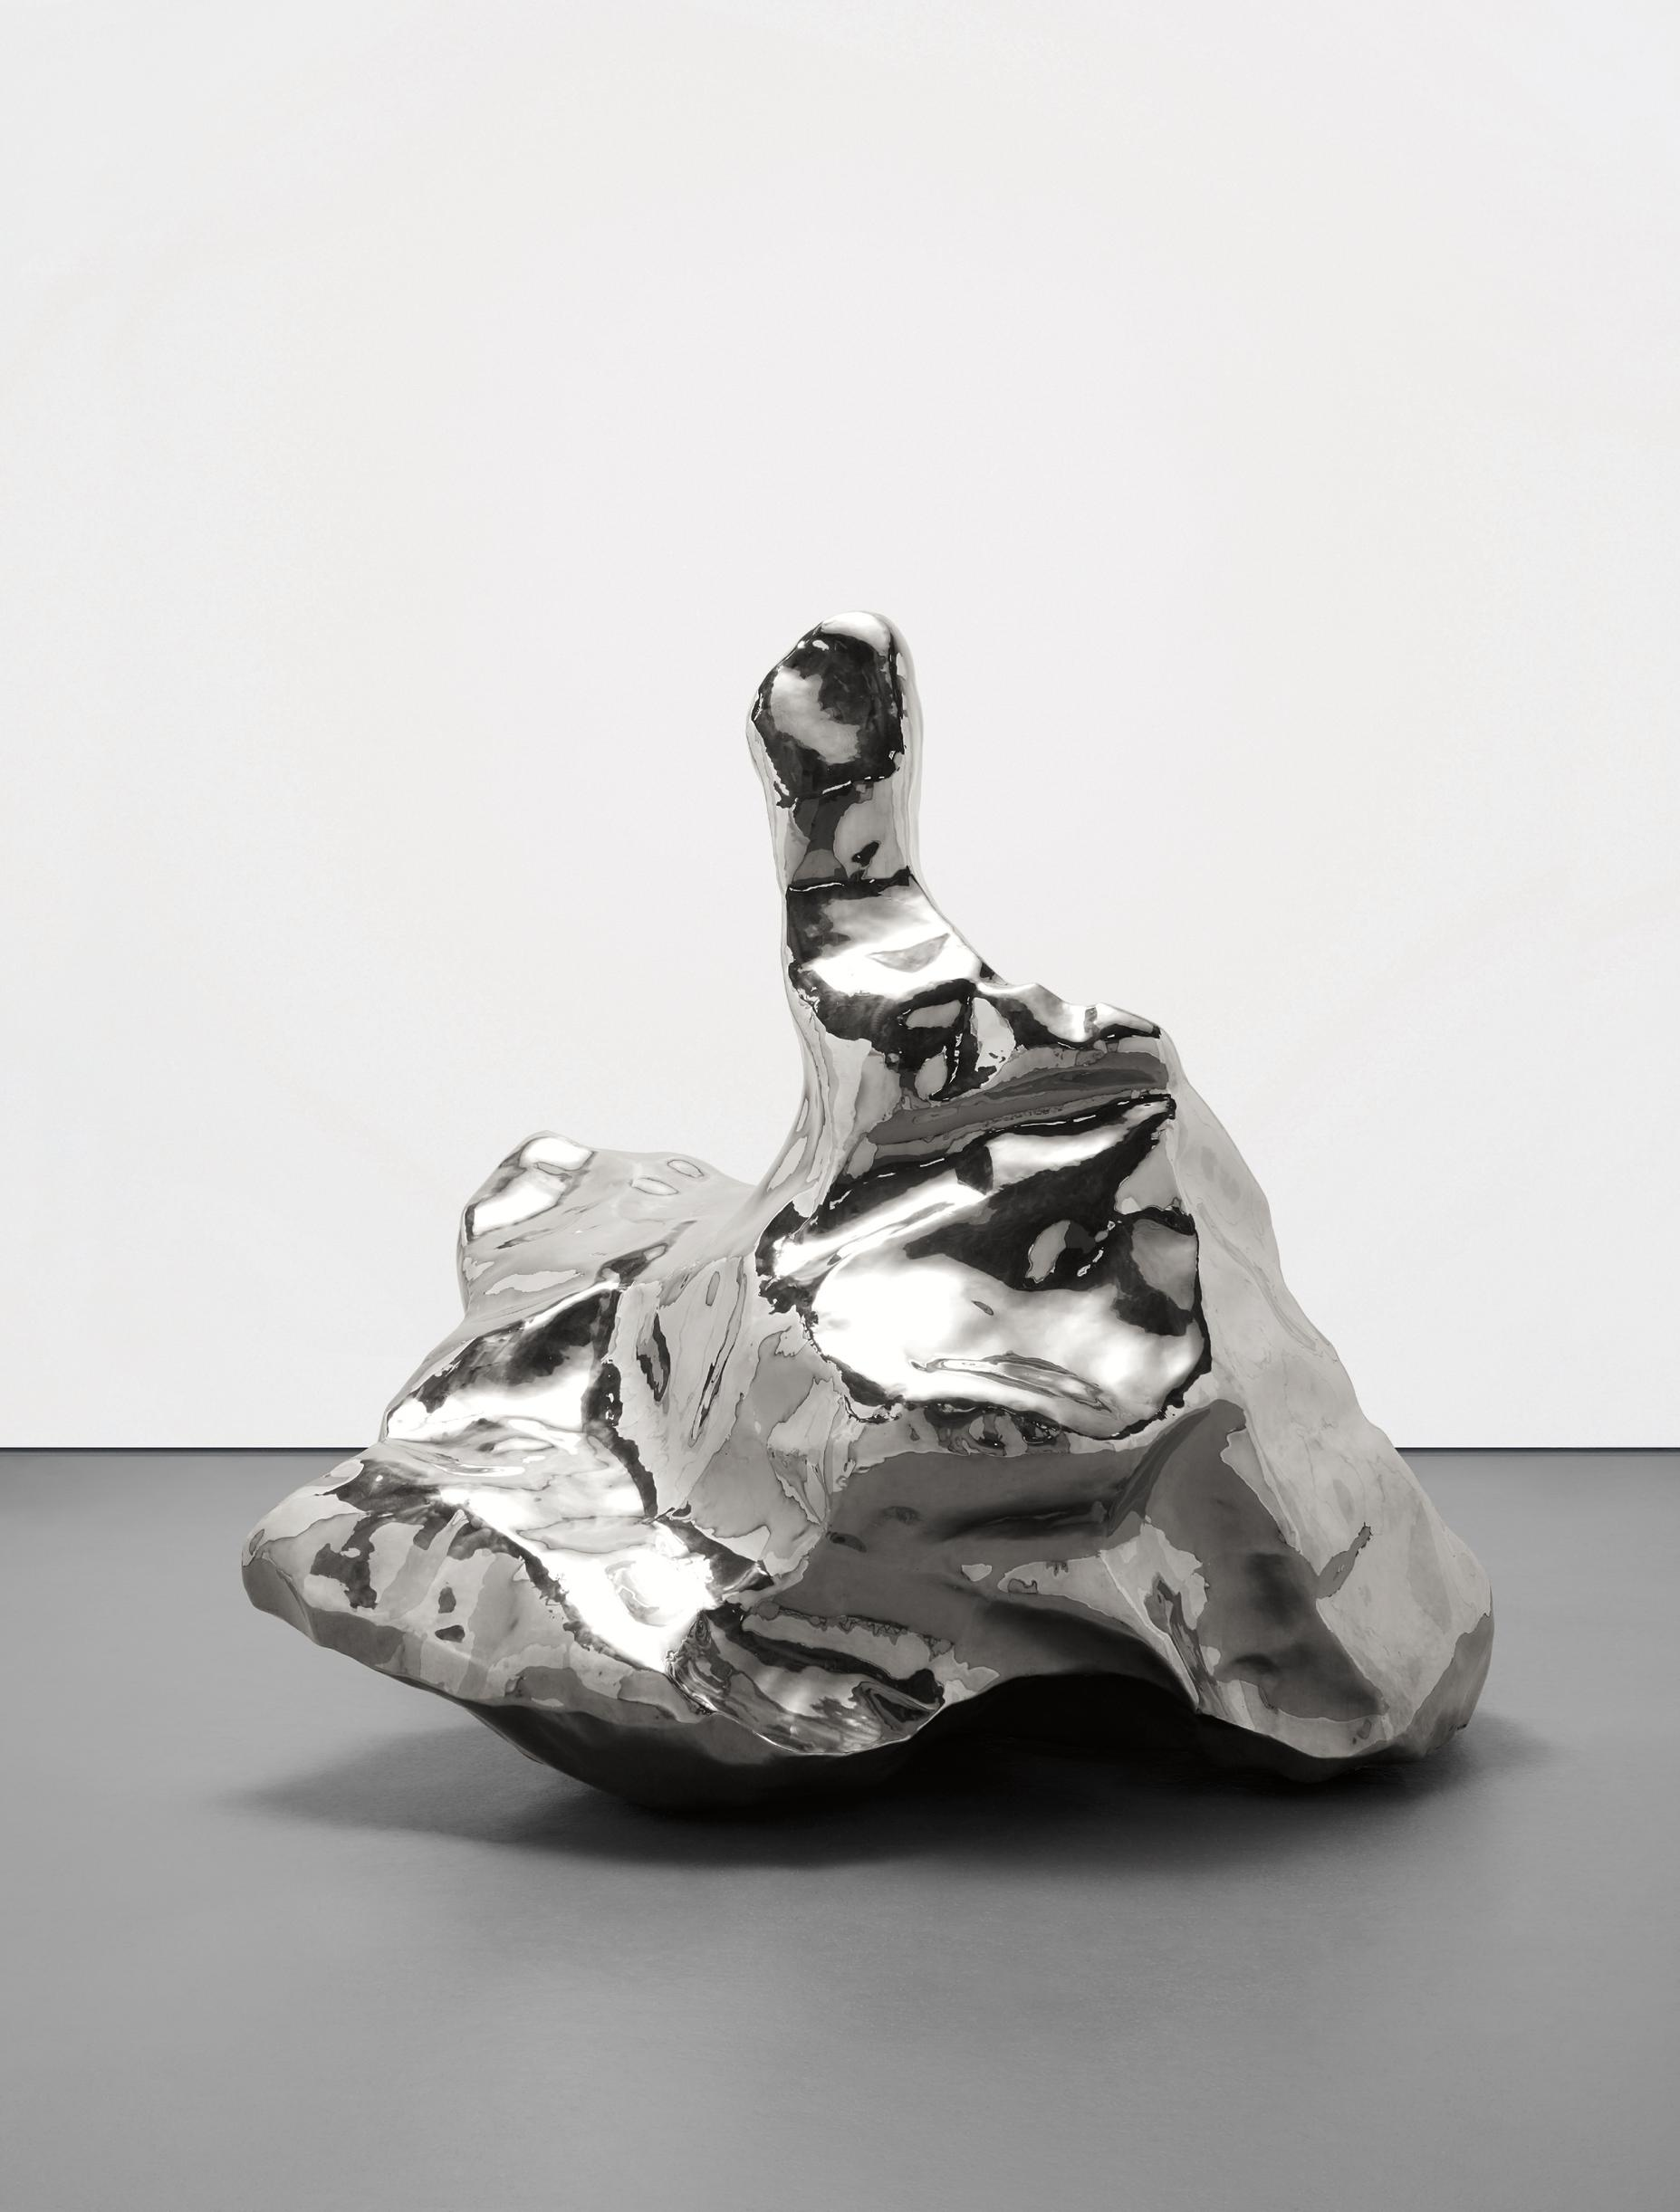 Zhan Wang-Artificial Rock No. 40-2001